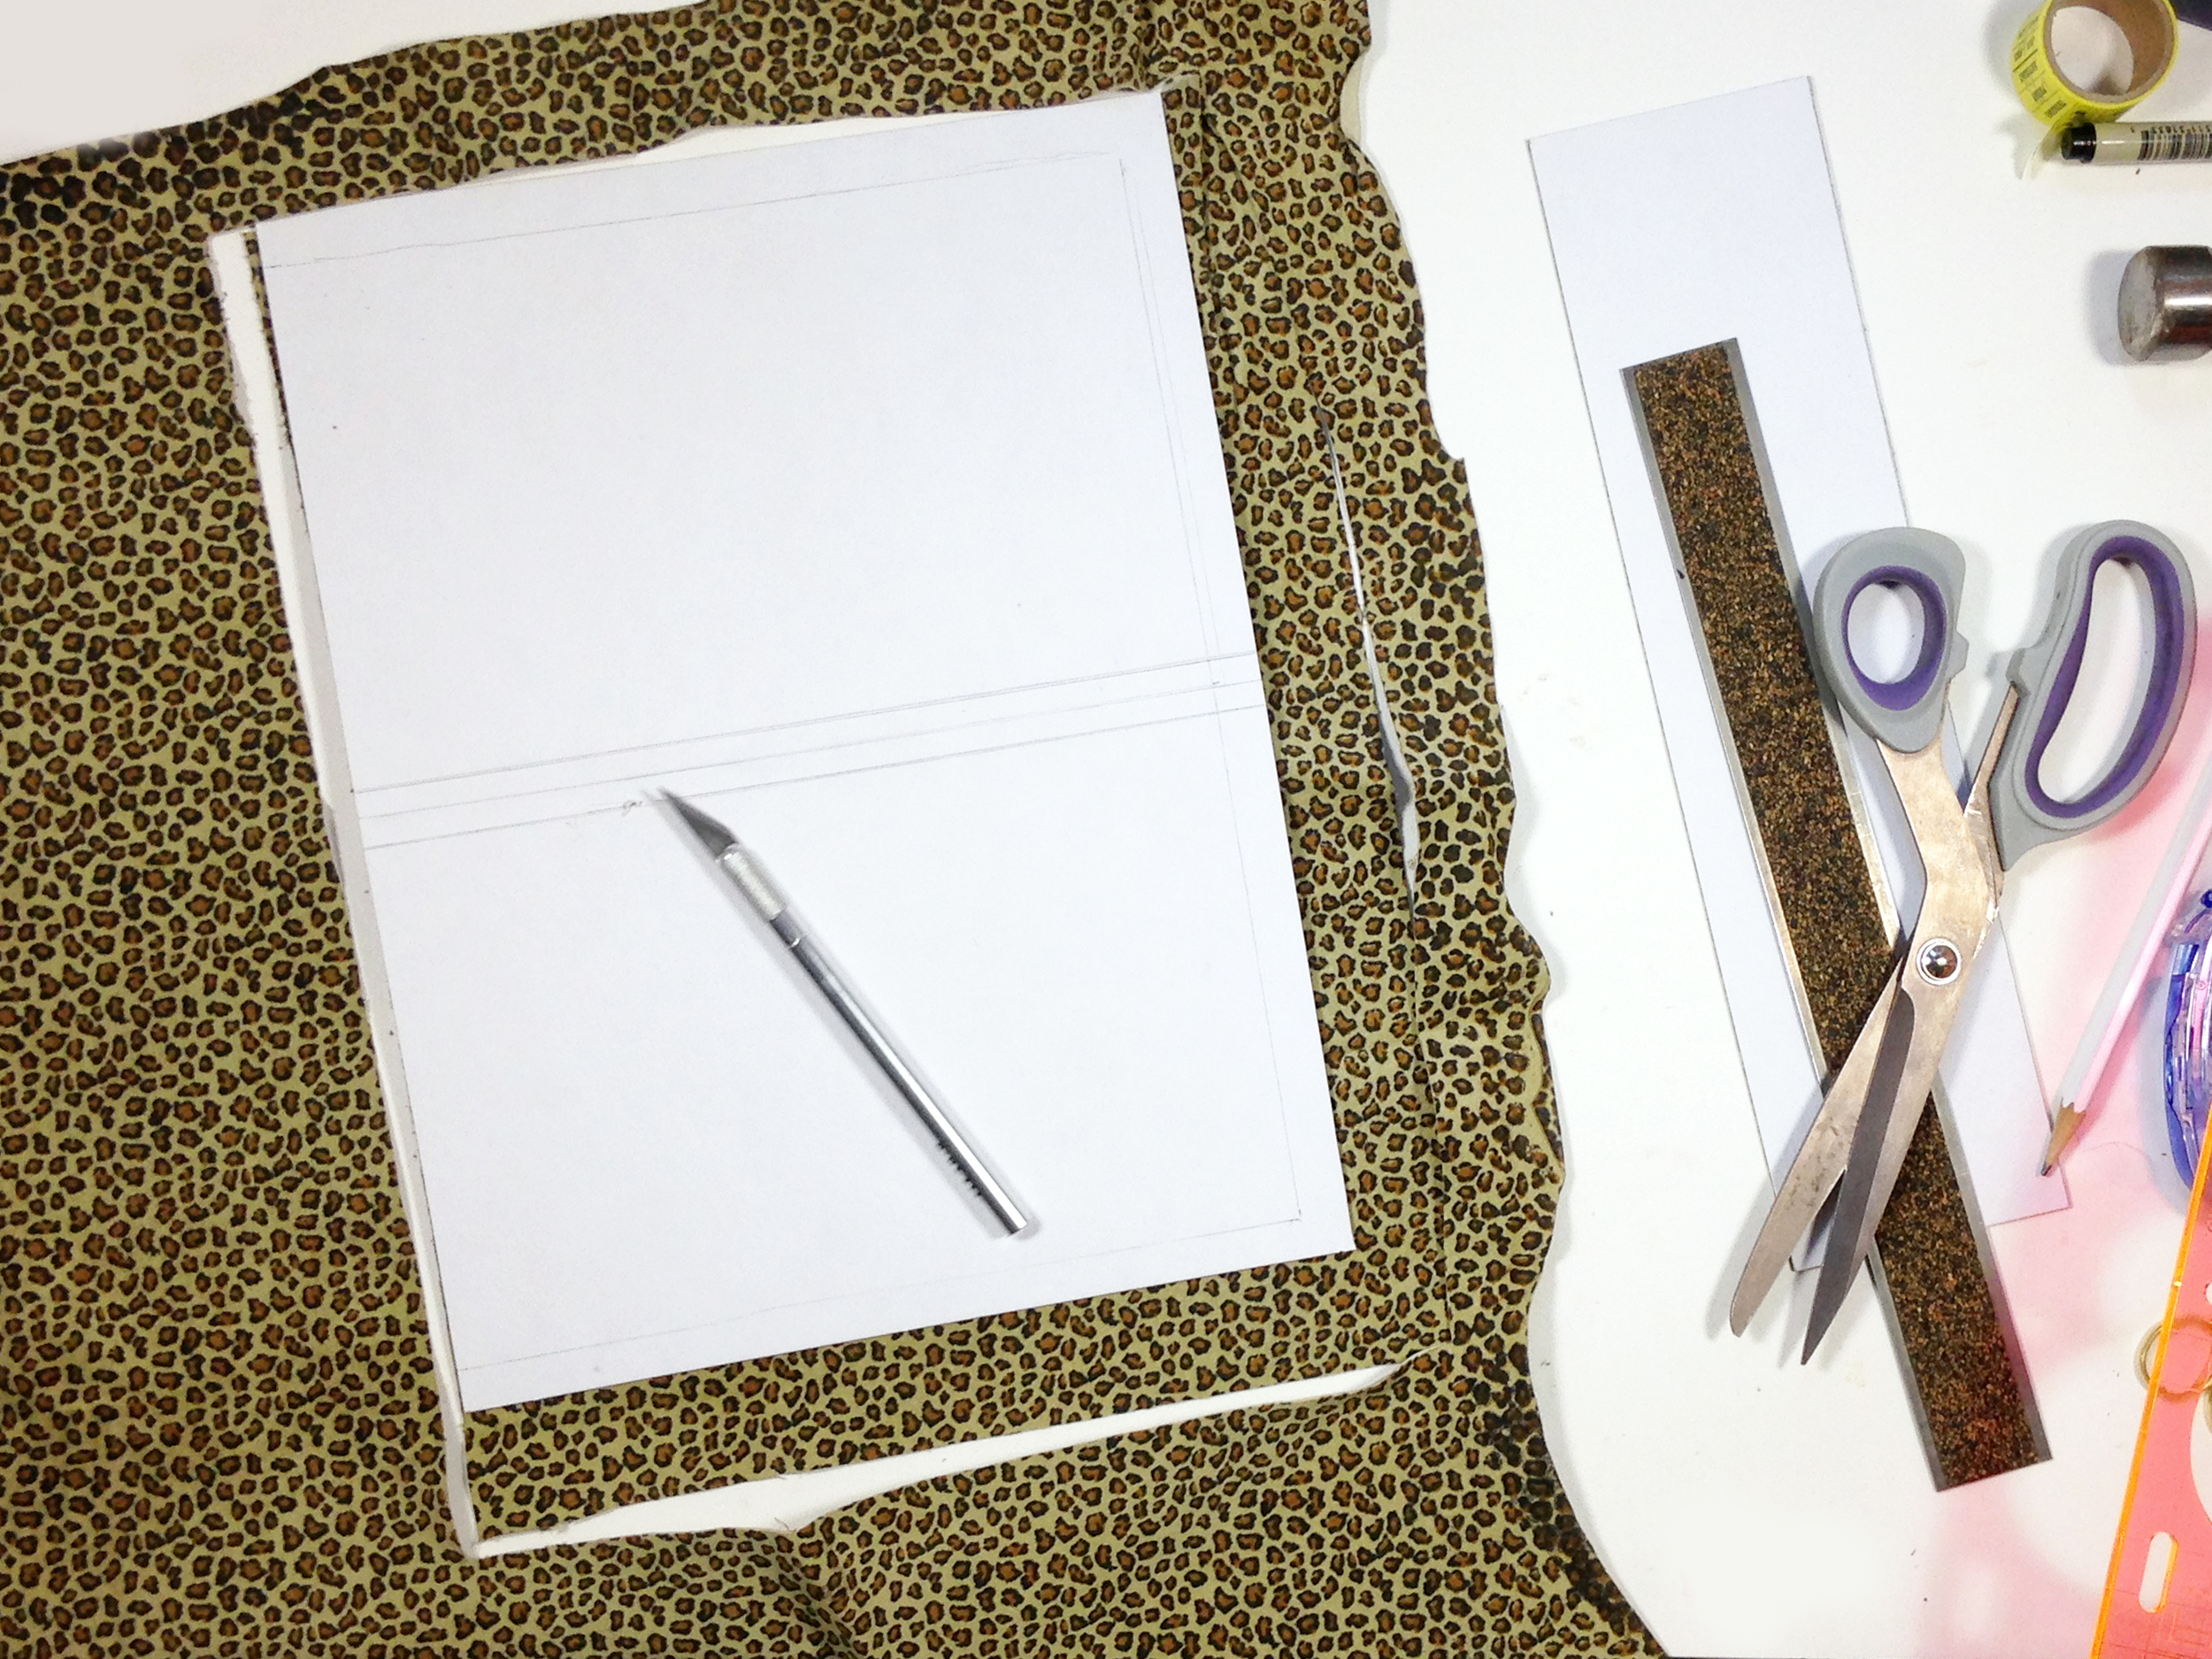 IY | LEATHER COVERED + TABBED NOTEBOOK | THE PAPER CURATOR